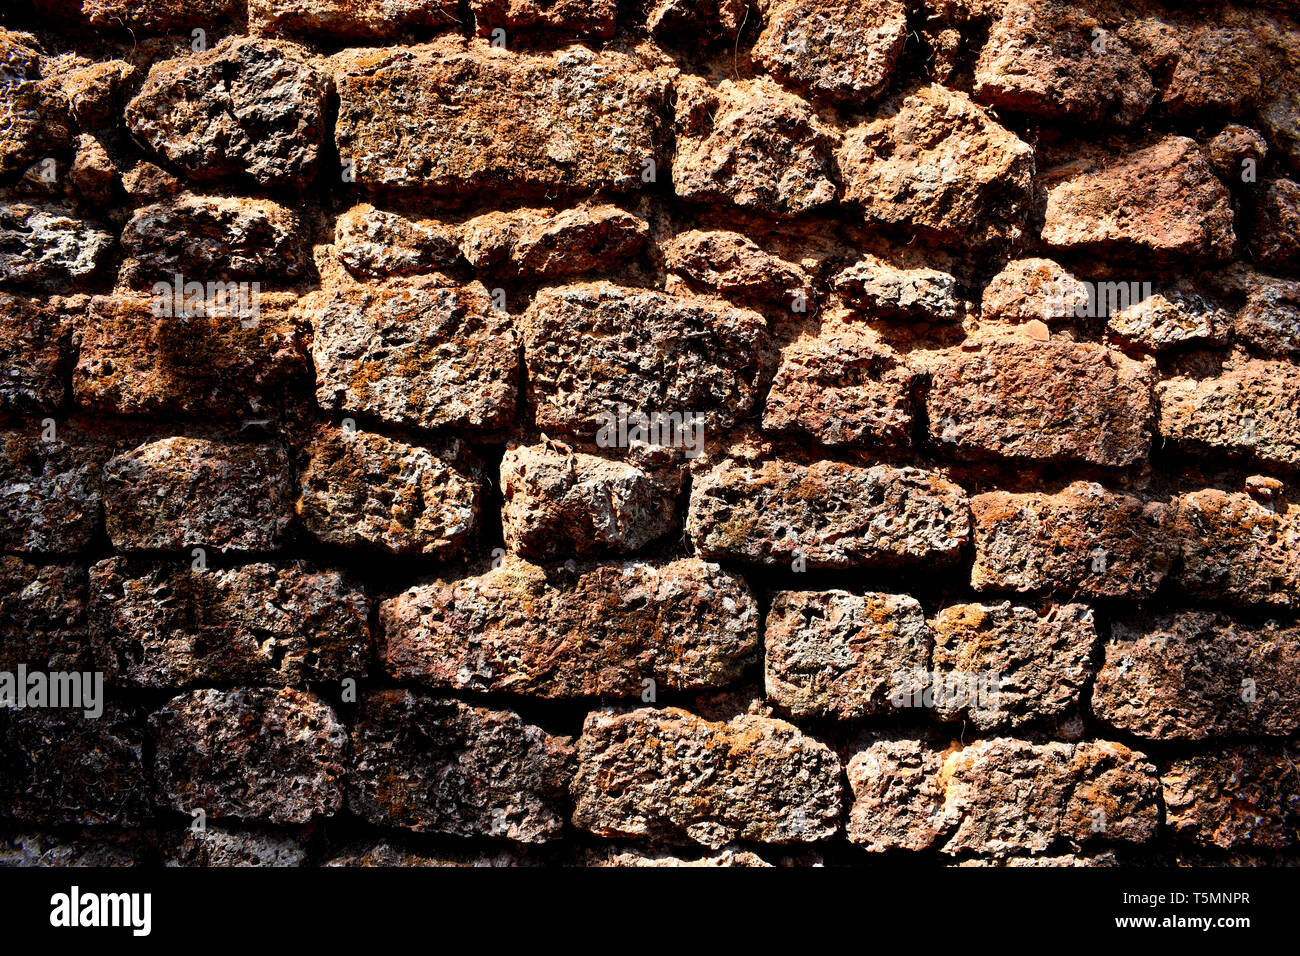 Closeup of a portion of a wall made of laterite rocks. - Stock Image